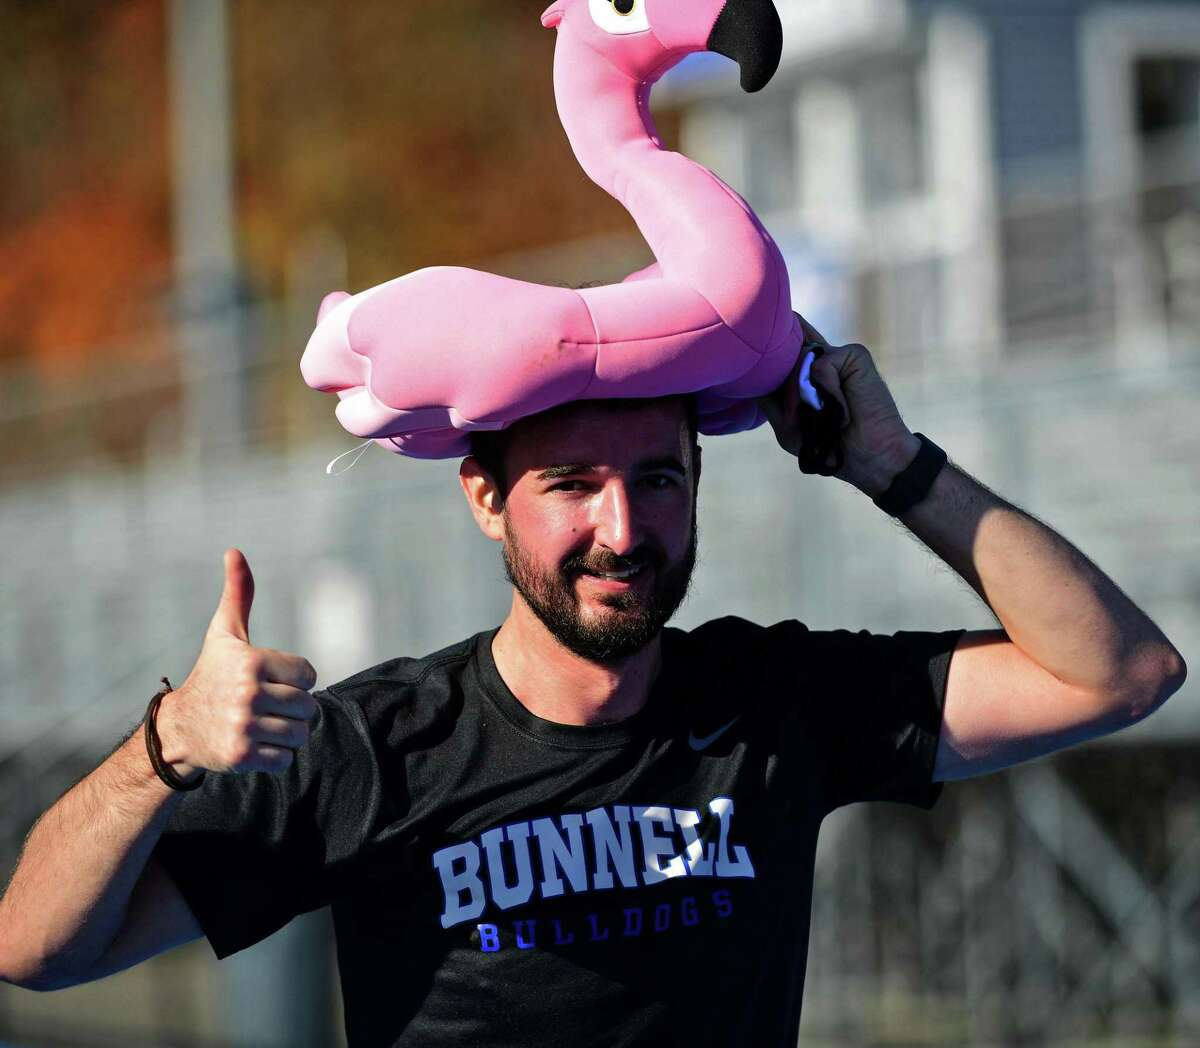 Bunnell High School faculty including Spanish teacher Jose Burguillos and their familes run in the mini Vicki Soto 5K Saturday, November 7, 2020, in Stratford, Conn. The race supports four renewable $5,000 scholarships for high school students from Stratford.